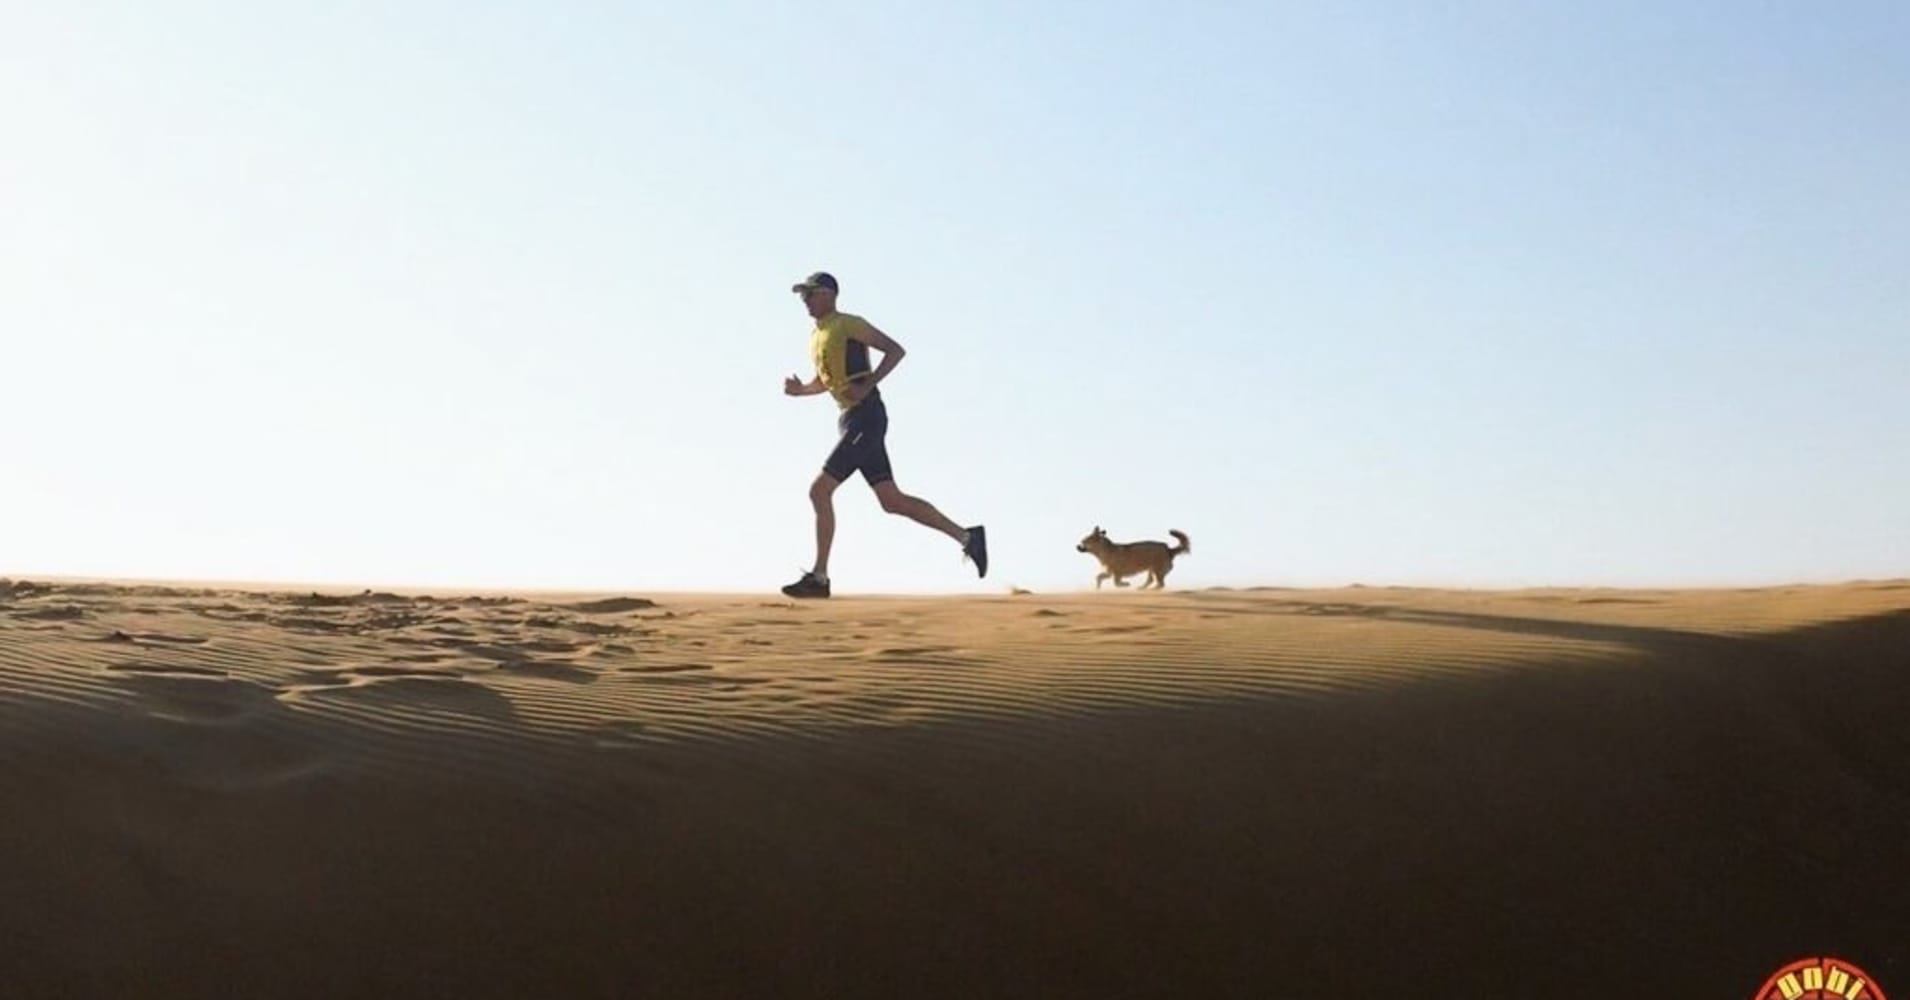 3 tricks to boost your mental toughness, from an ultra-marathoner and his dog